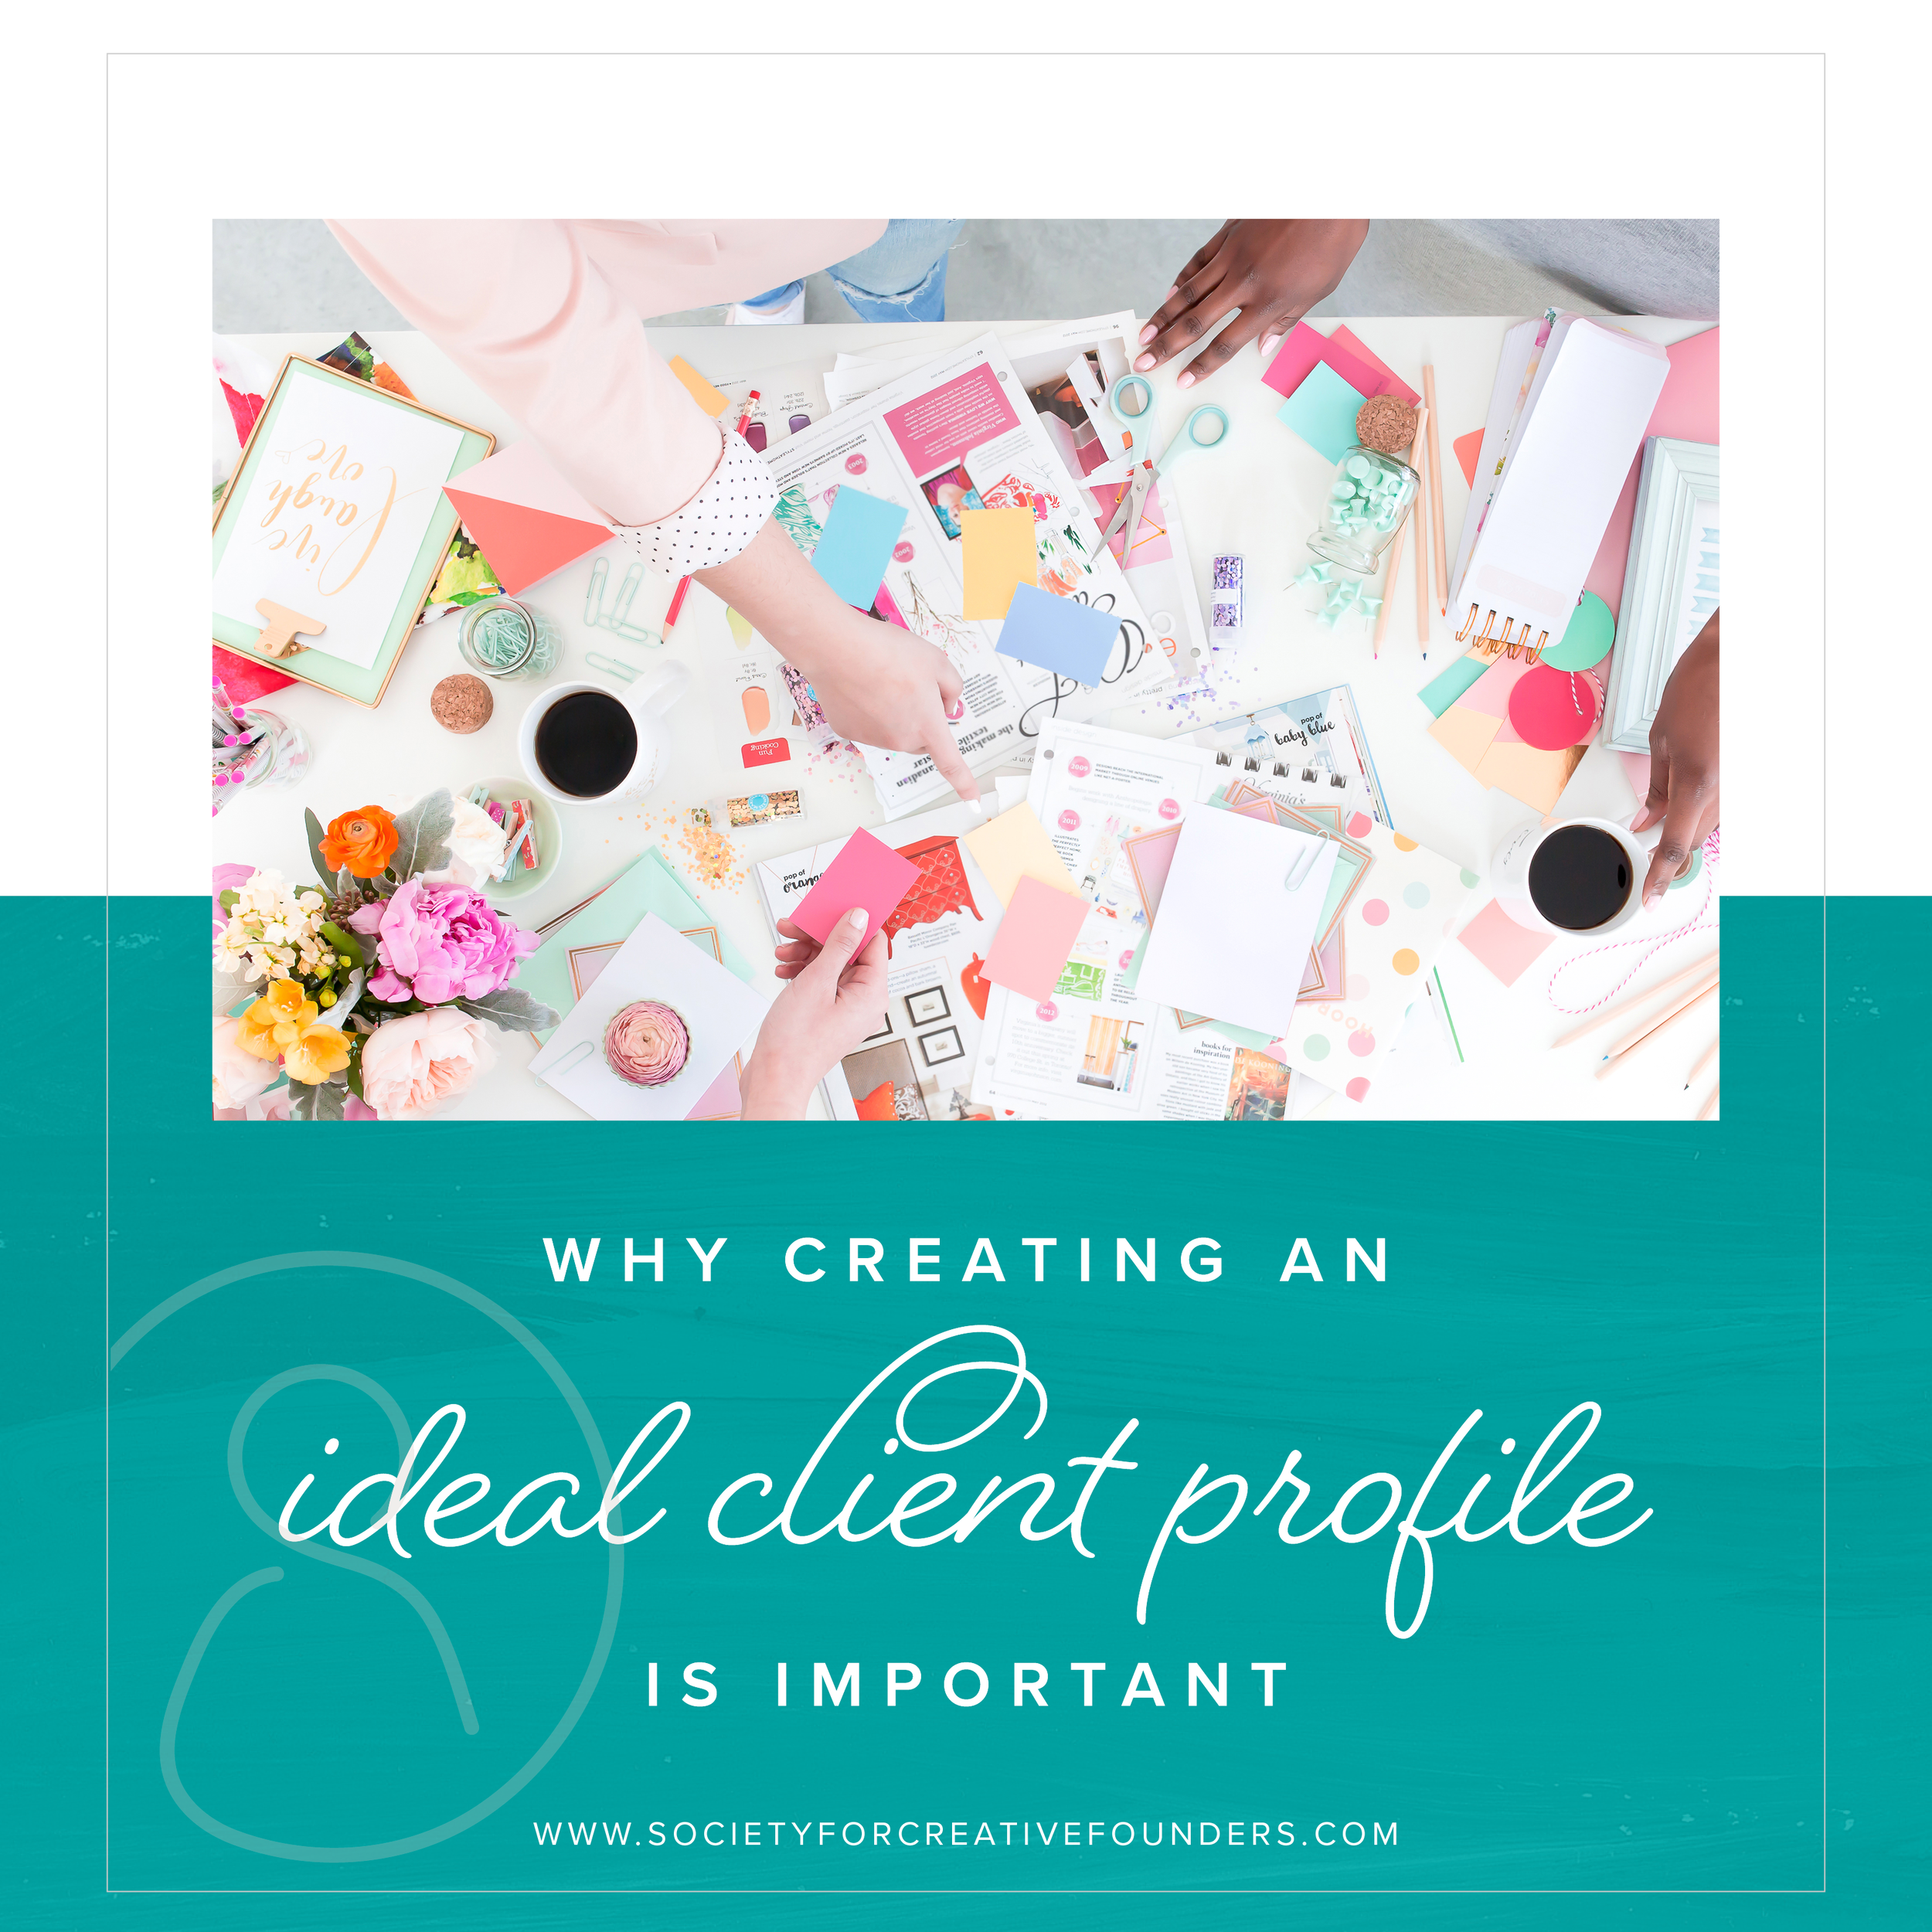 Why Creating an Ideal Client Profile is Important - Society for Creative Founders